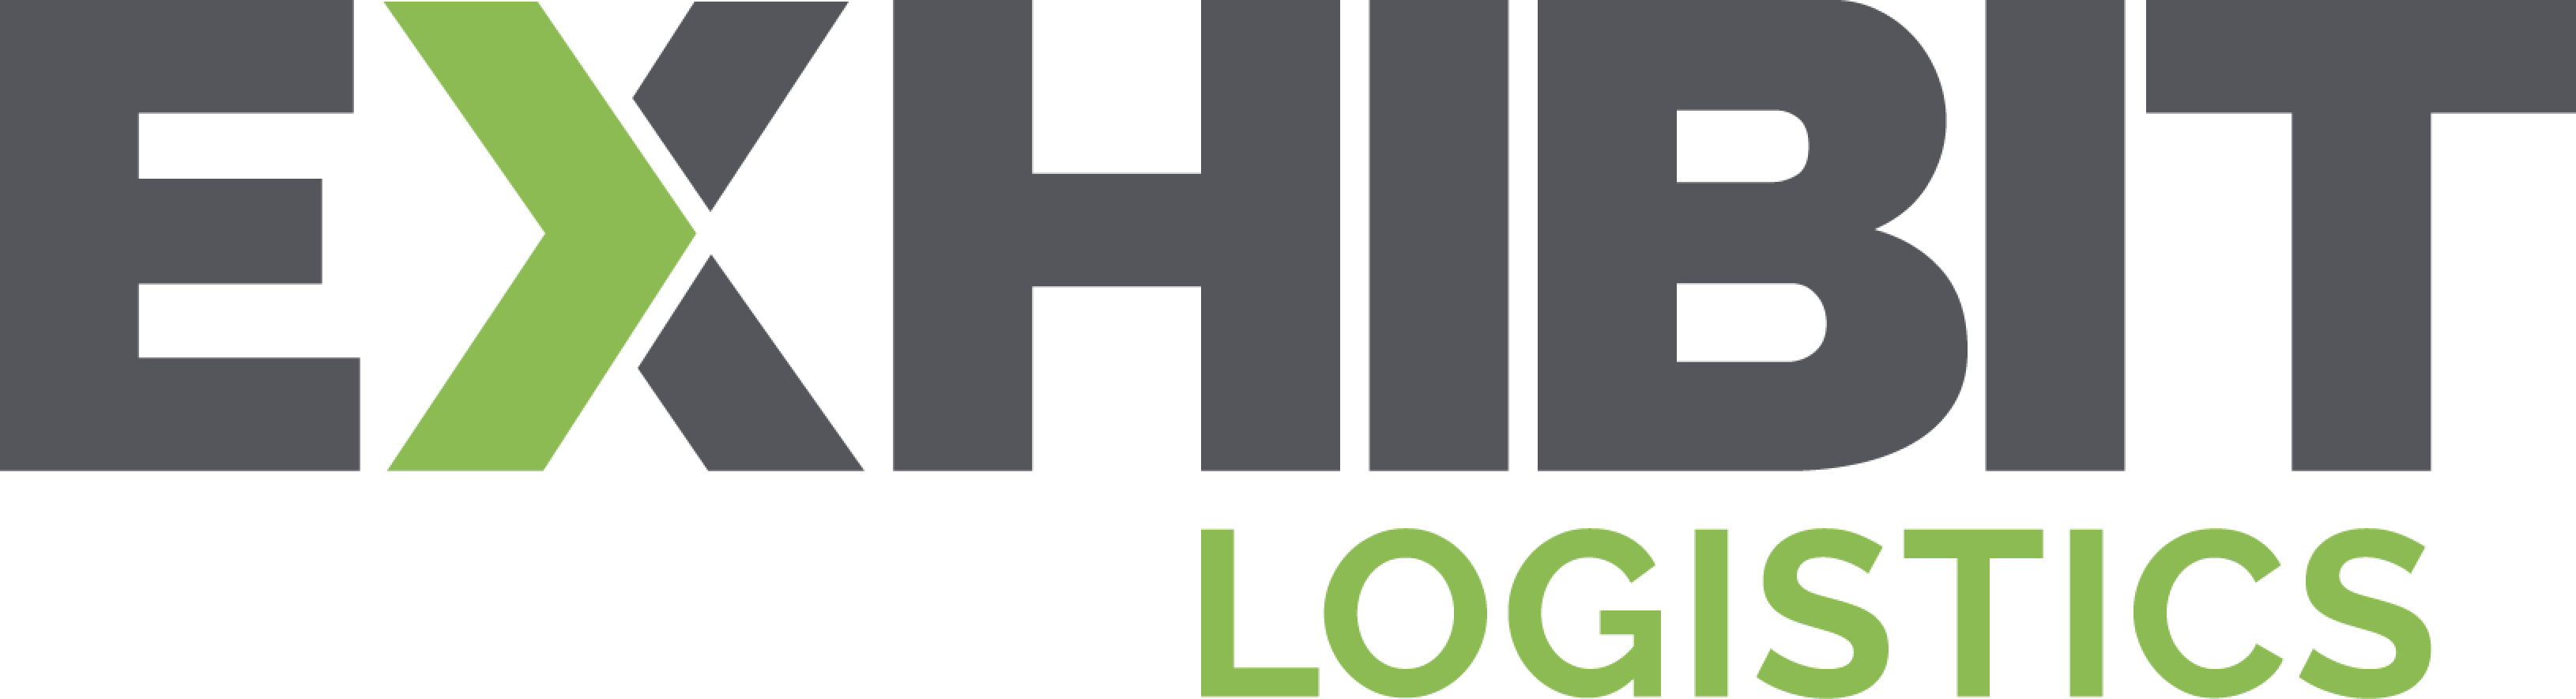 Exhibit Management & Logistics Logo